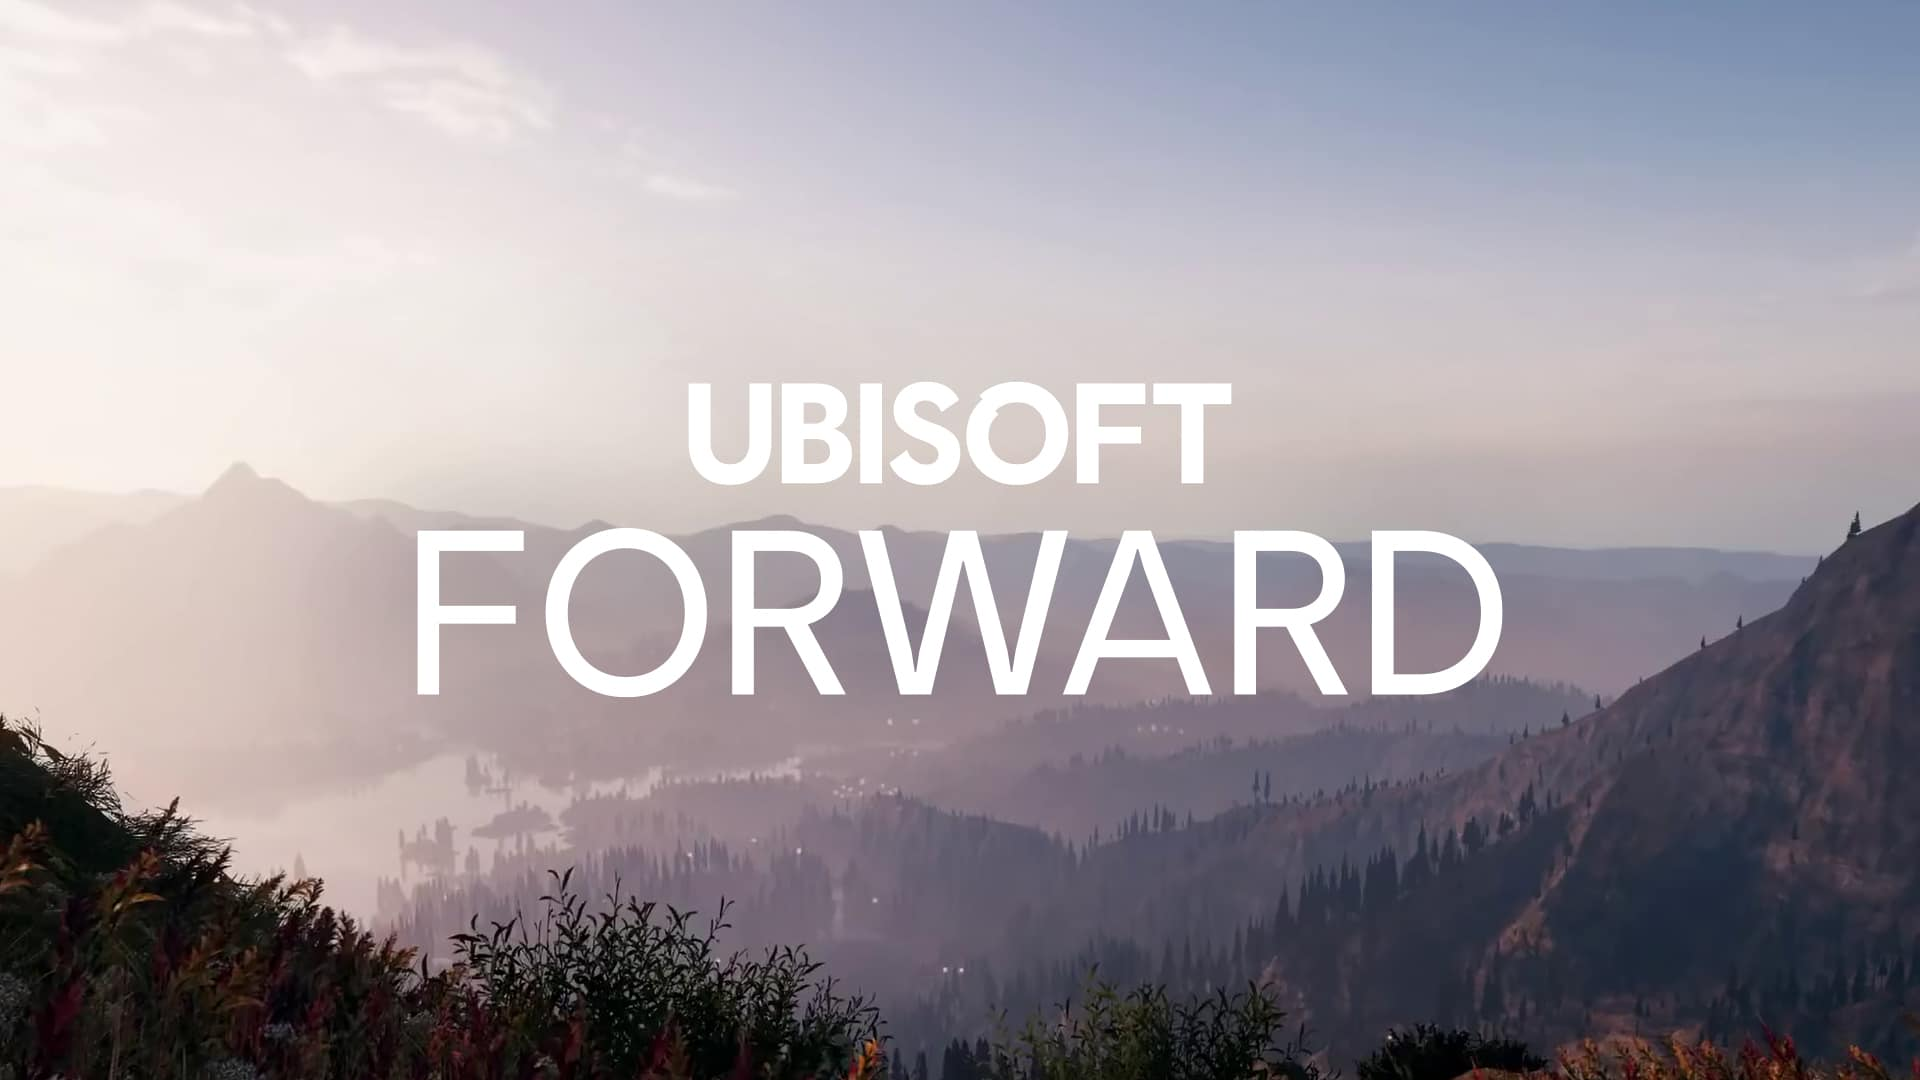 Ubisoft Forward